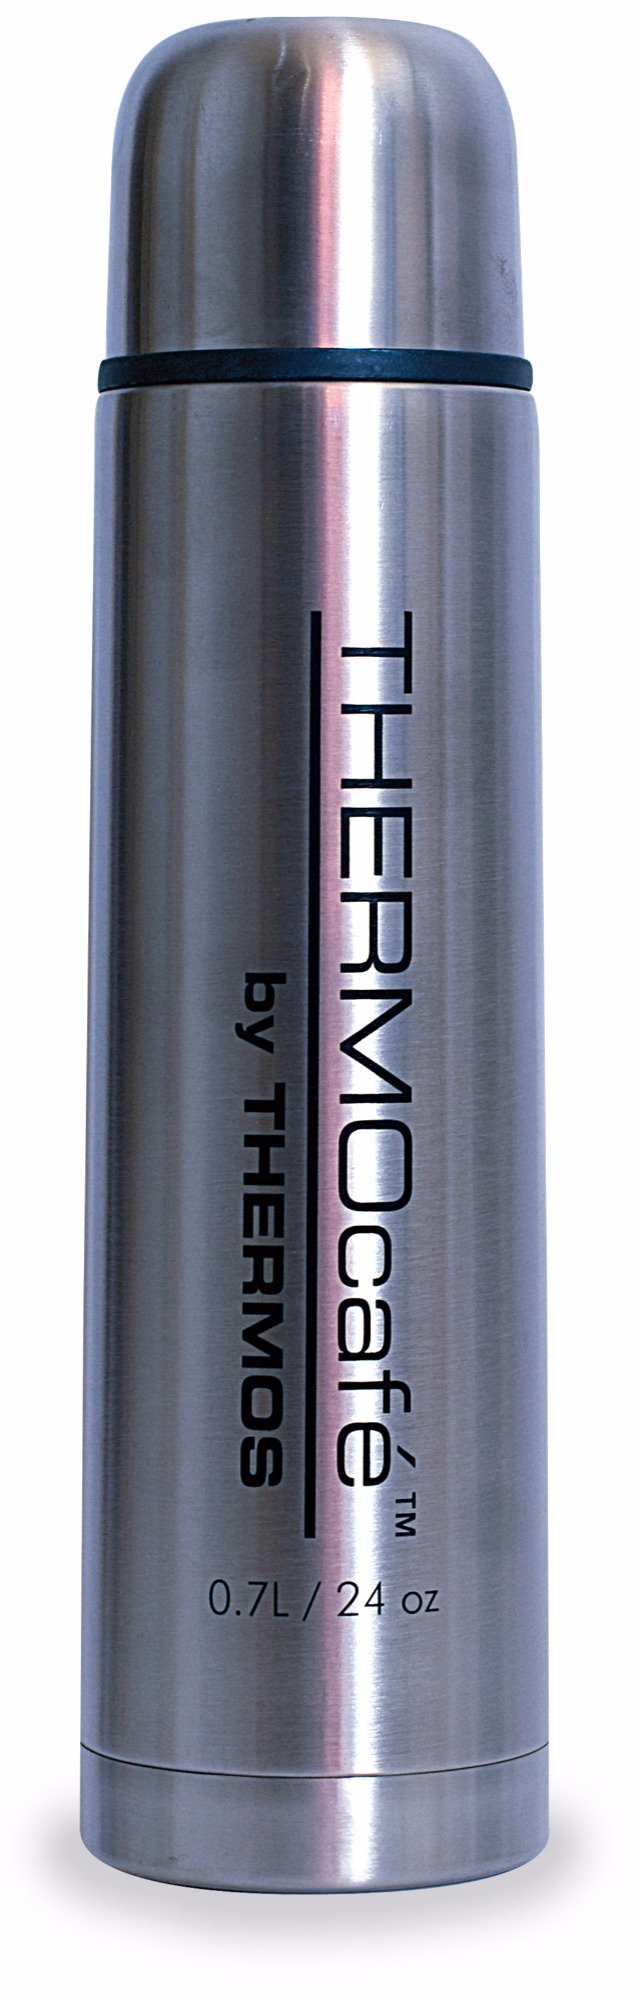 Thermos metal crema for Thermos caffe